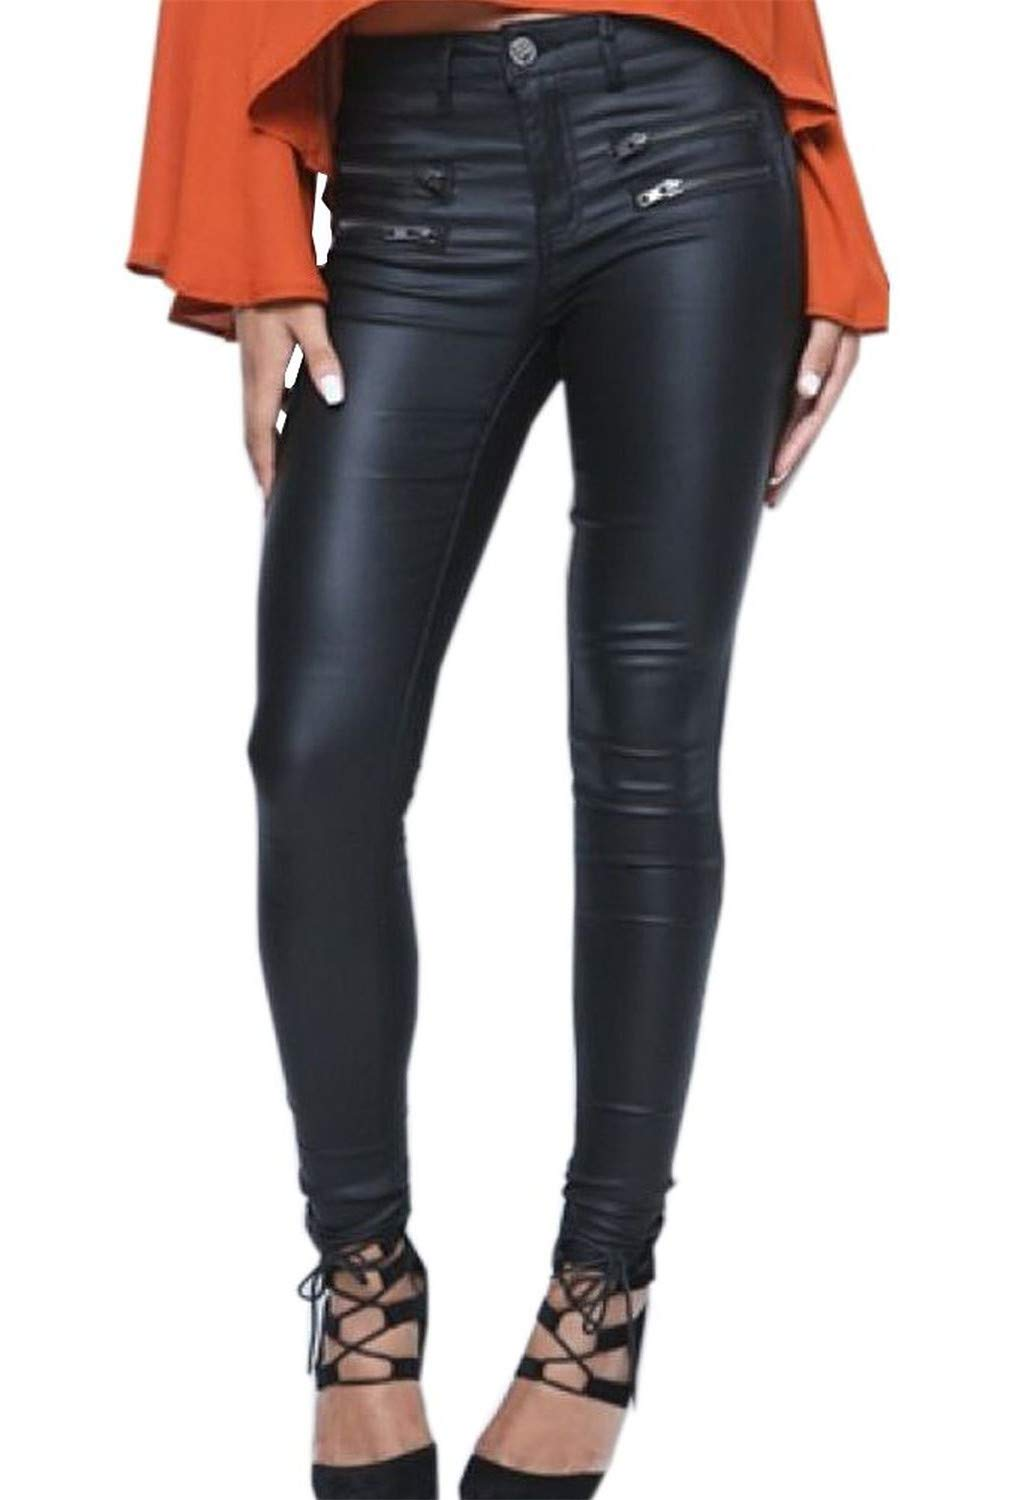 Crazy Women's High Waist Skinny Fit Faux Leather Biker Pants Slim Trousers-34